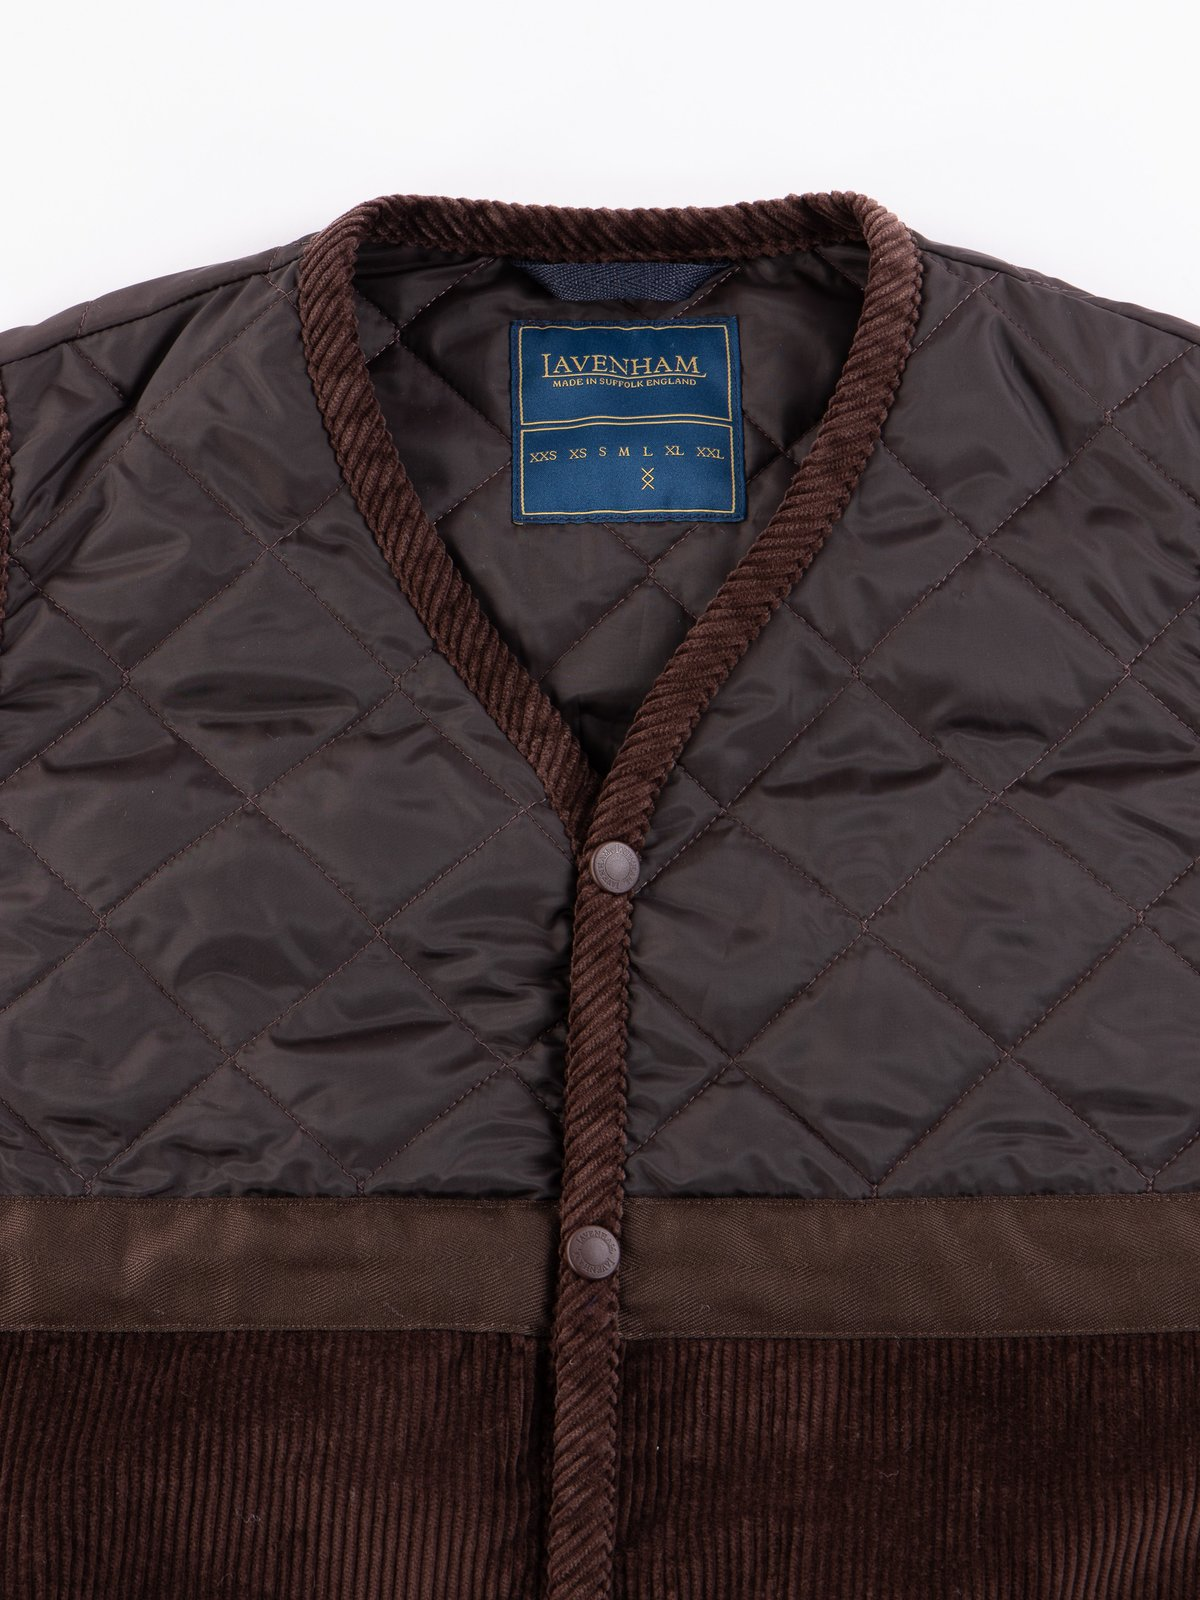 Brown Washed Cord Taped Gilet - Image 3